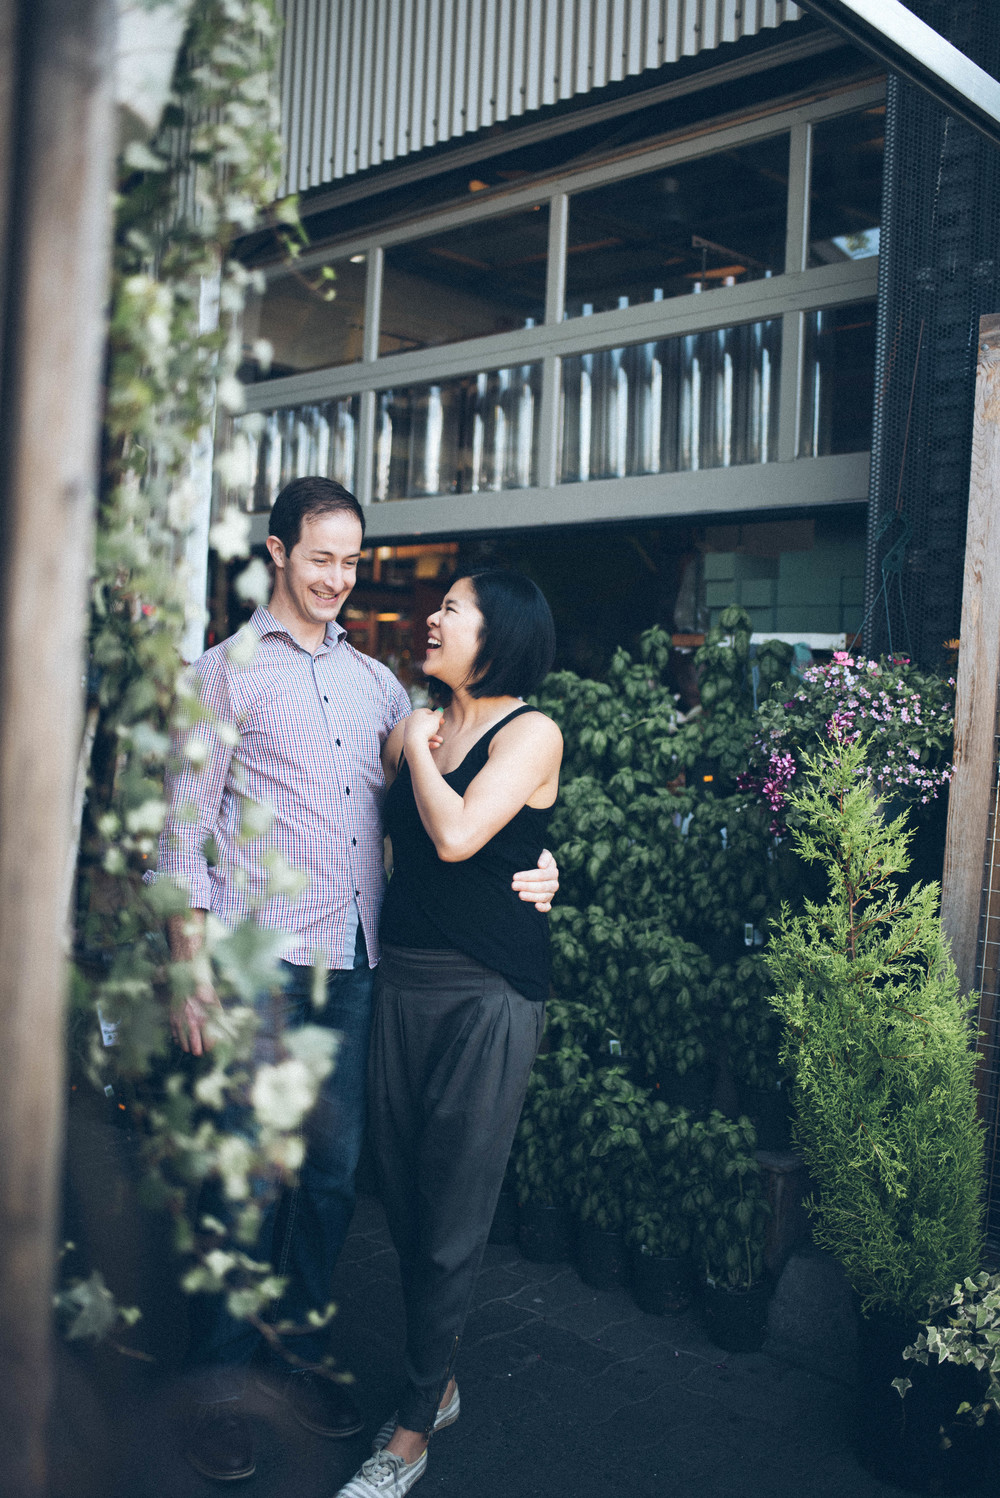 Granville Island Engagement Couple Connection Portrait Photography Session by Jo+Bo Vancouver Thailand Destination wedding lifestyle family photographer